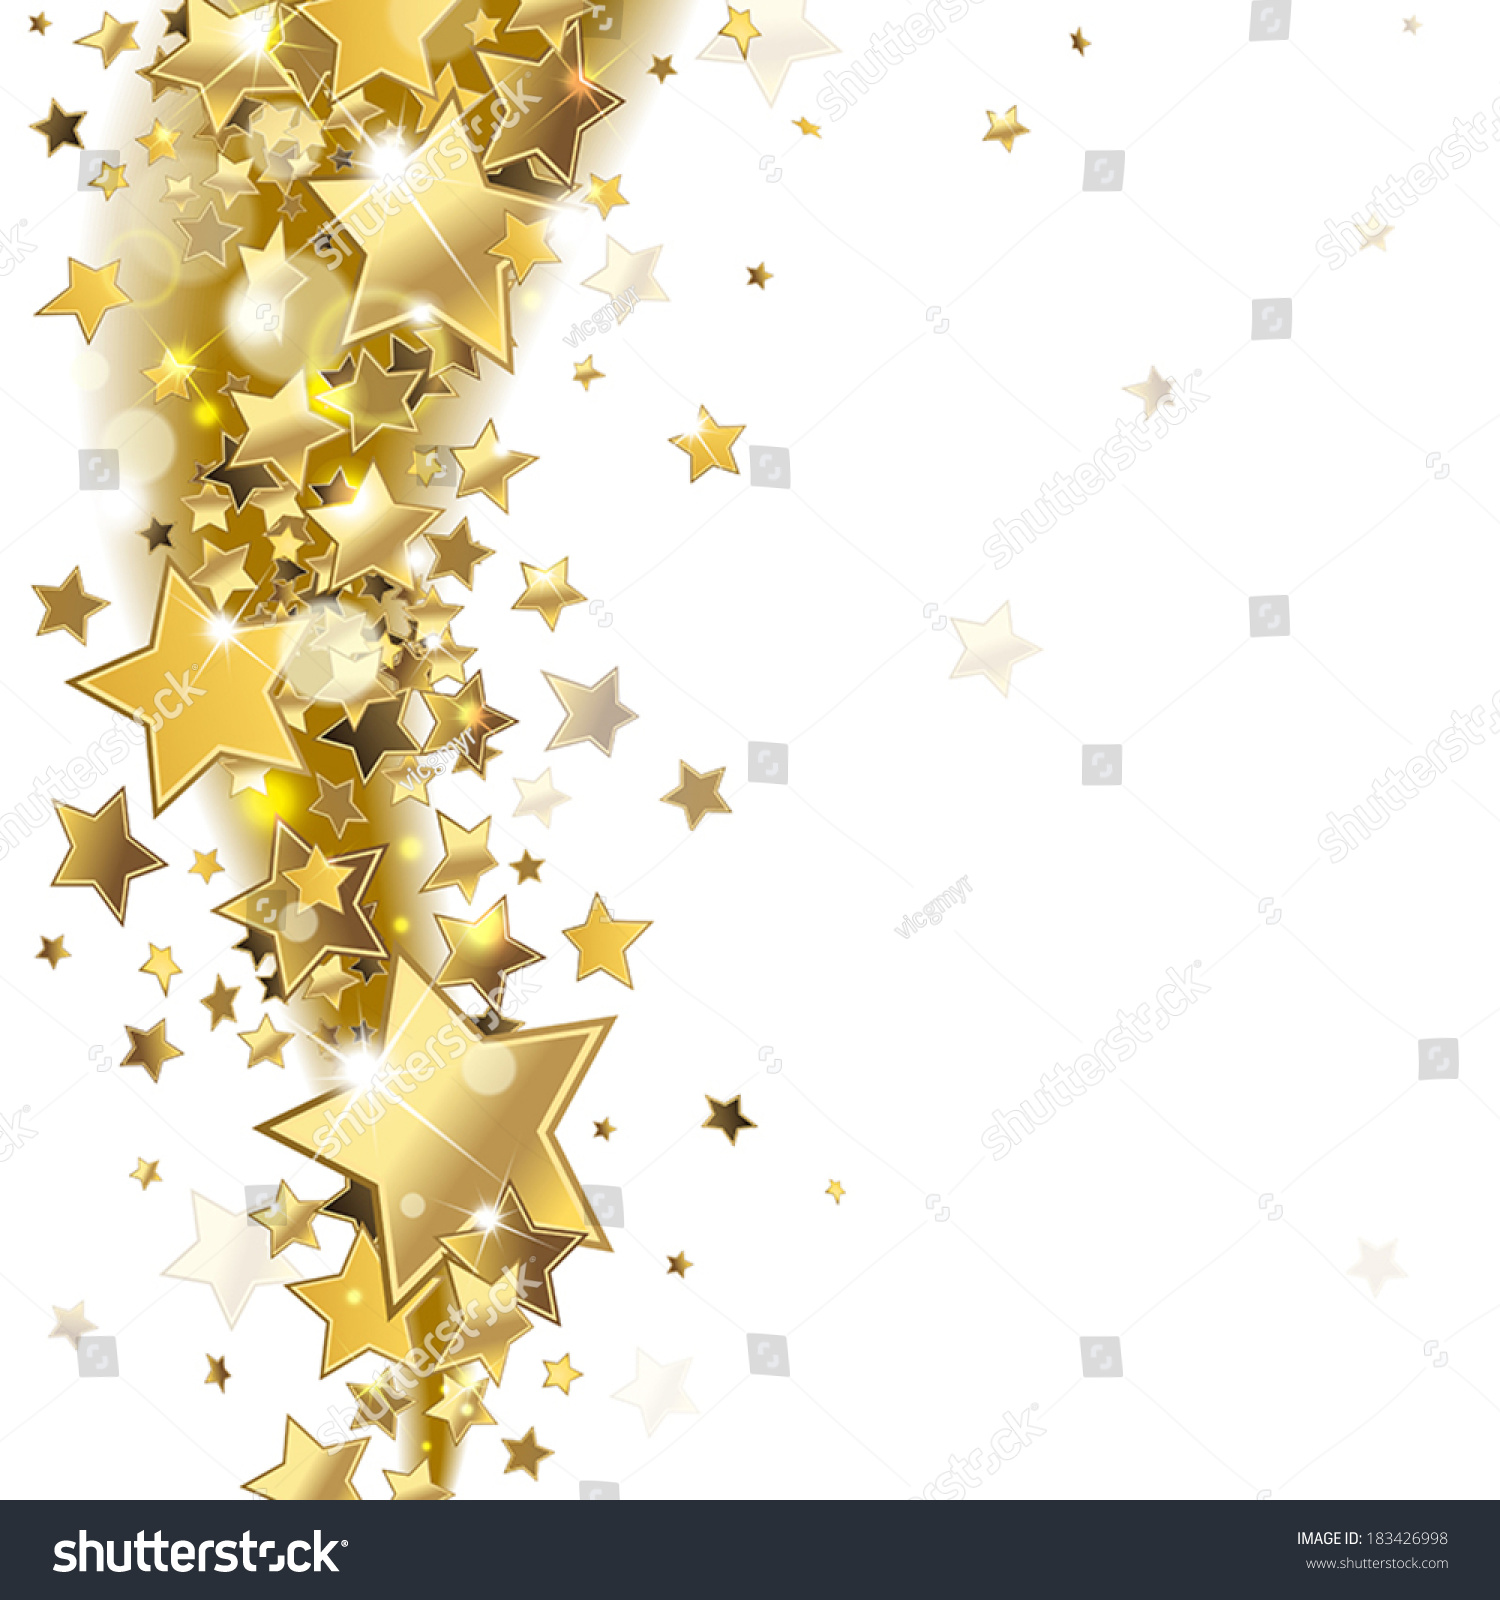 Falling Glitter Confetti Wallpapers Background Shiny Gold Stars Stock Vector 183426998